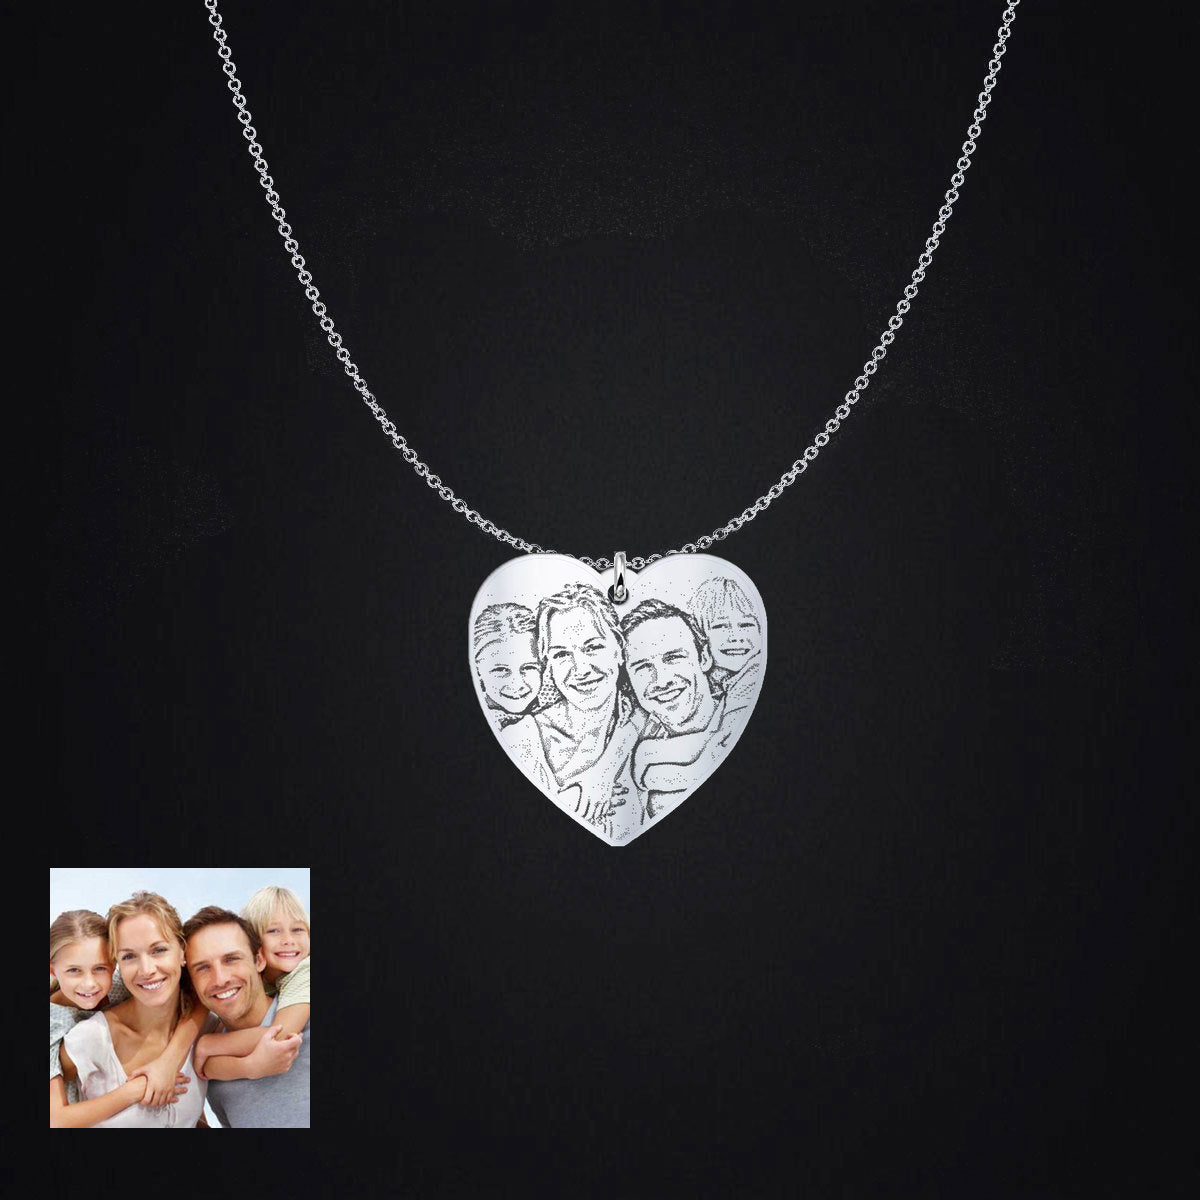 Personalized Silver Plated Heart Shaped Photo Pendant Necklace